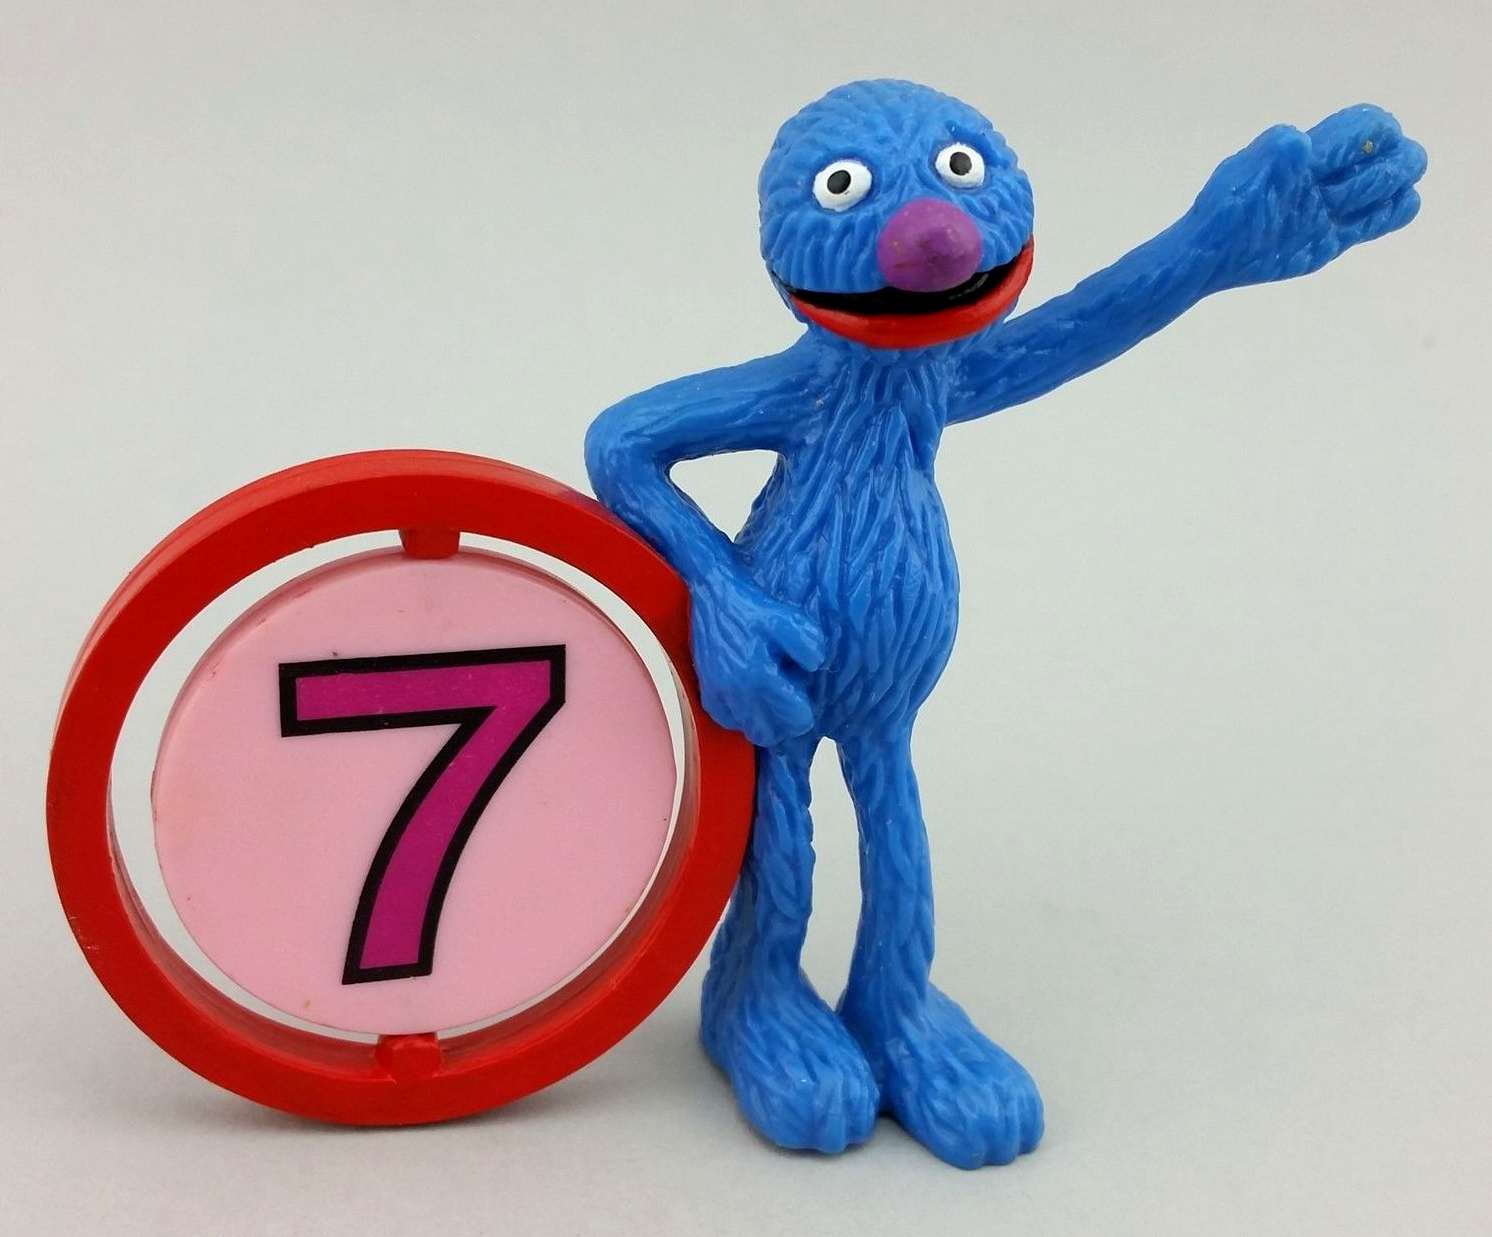 File:ApplauseGrover7Circle.jpg